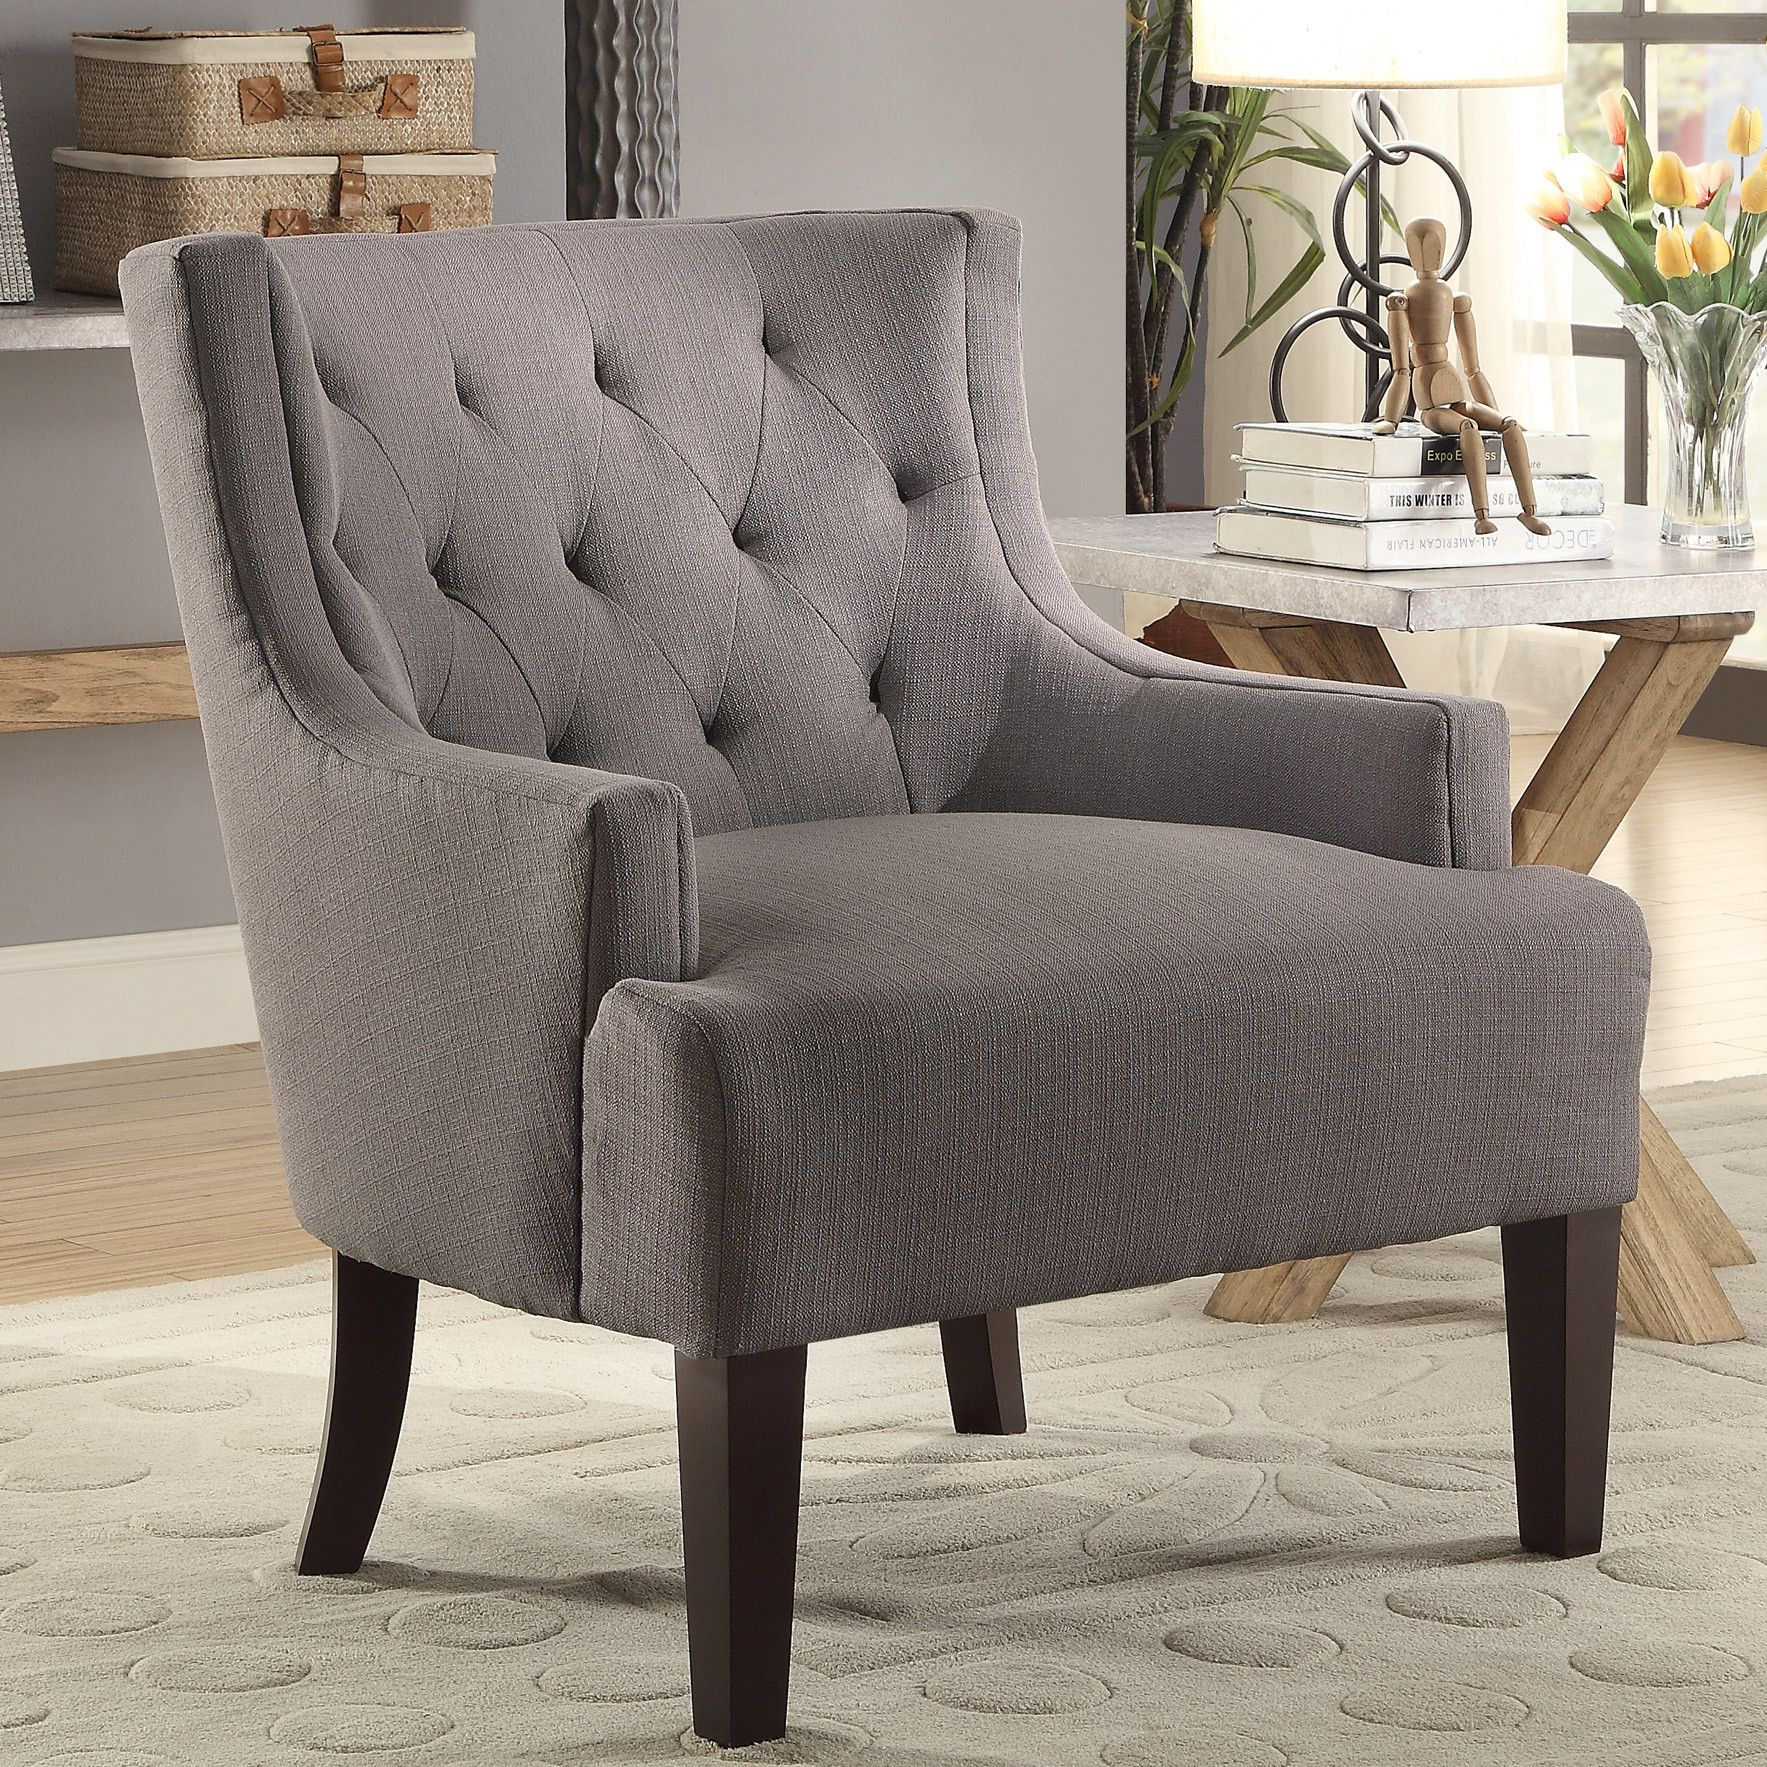 Homelegance Dulce Arm Chair Home Decor Pinterest Accent Chairs